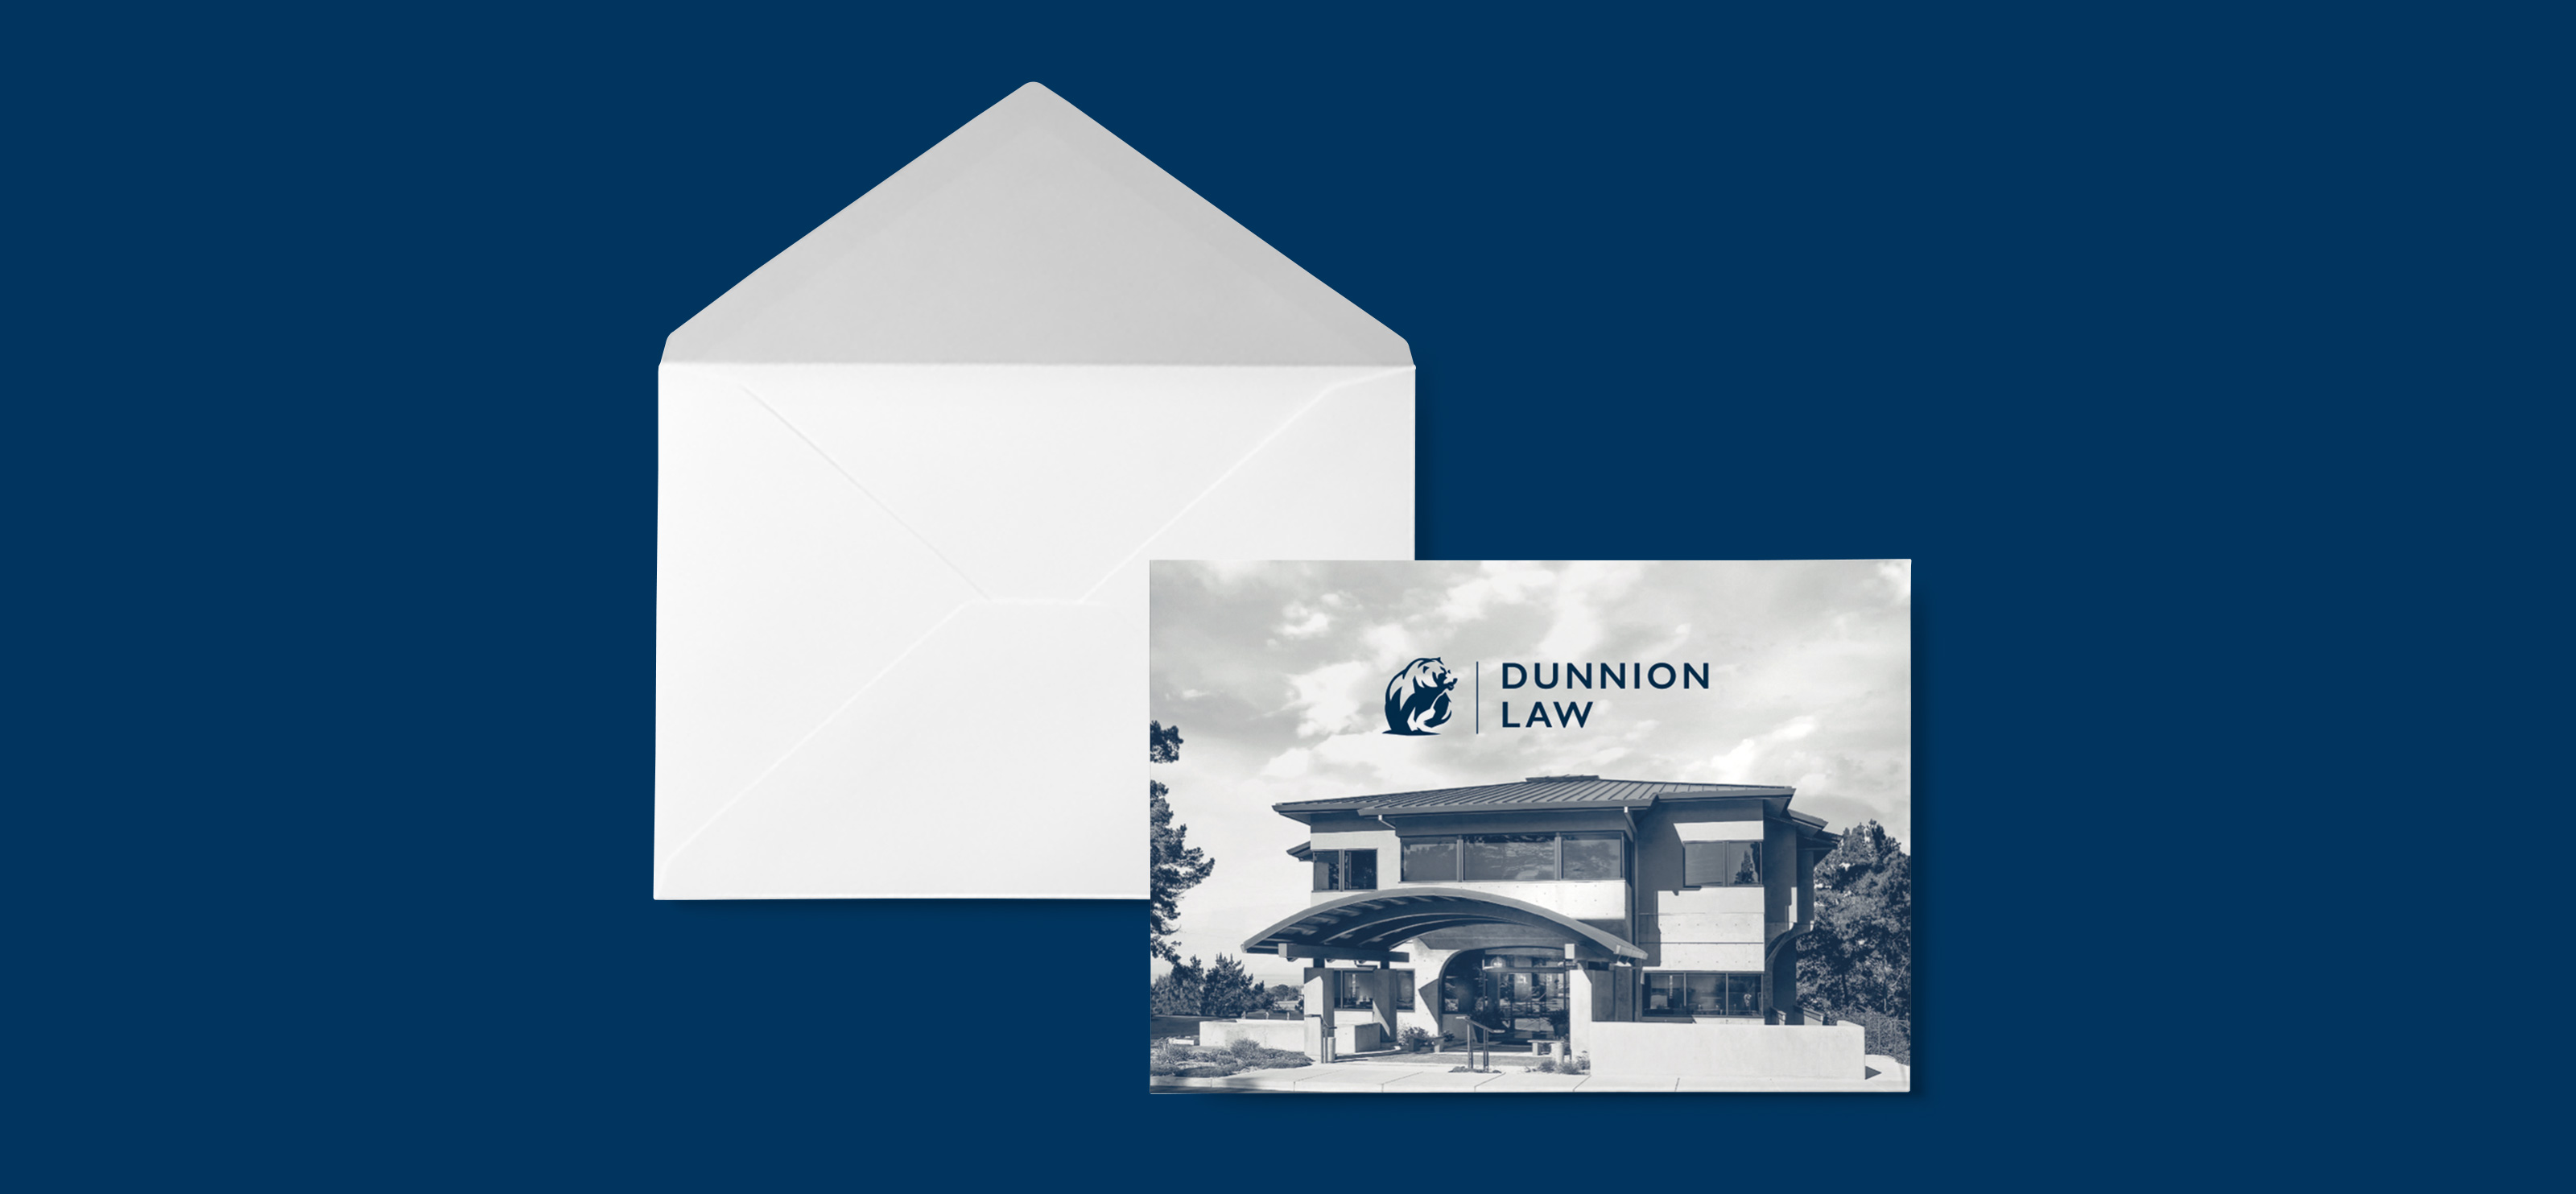 Dunnion-Law-Envelope